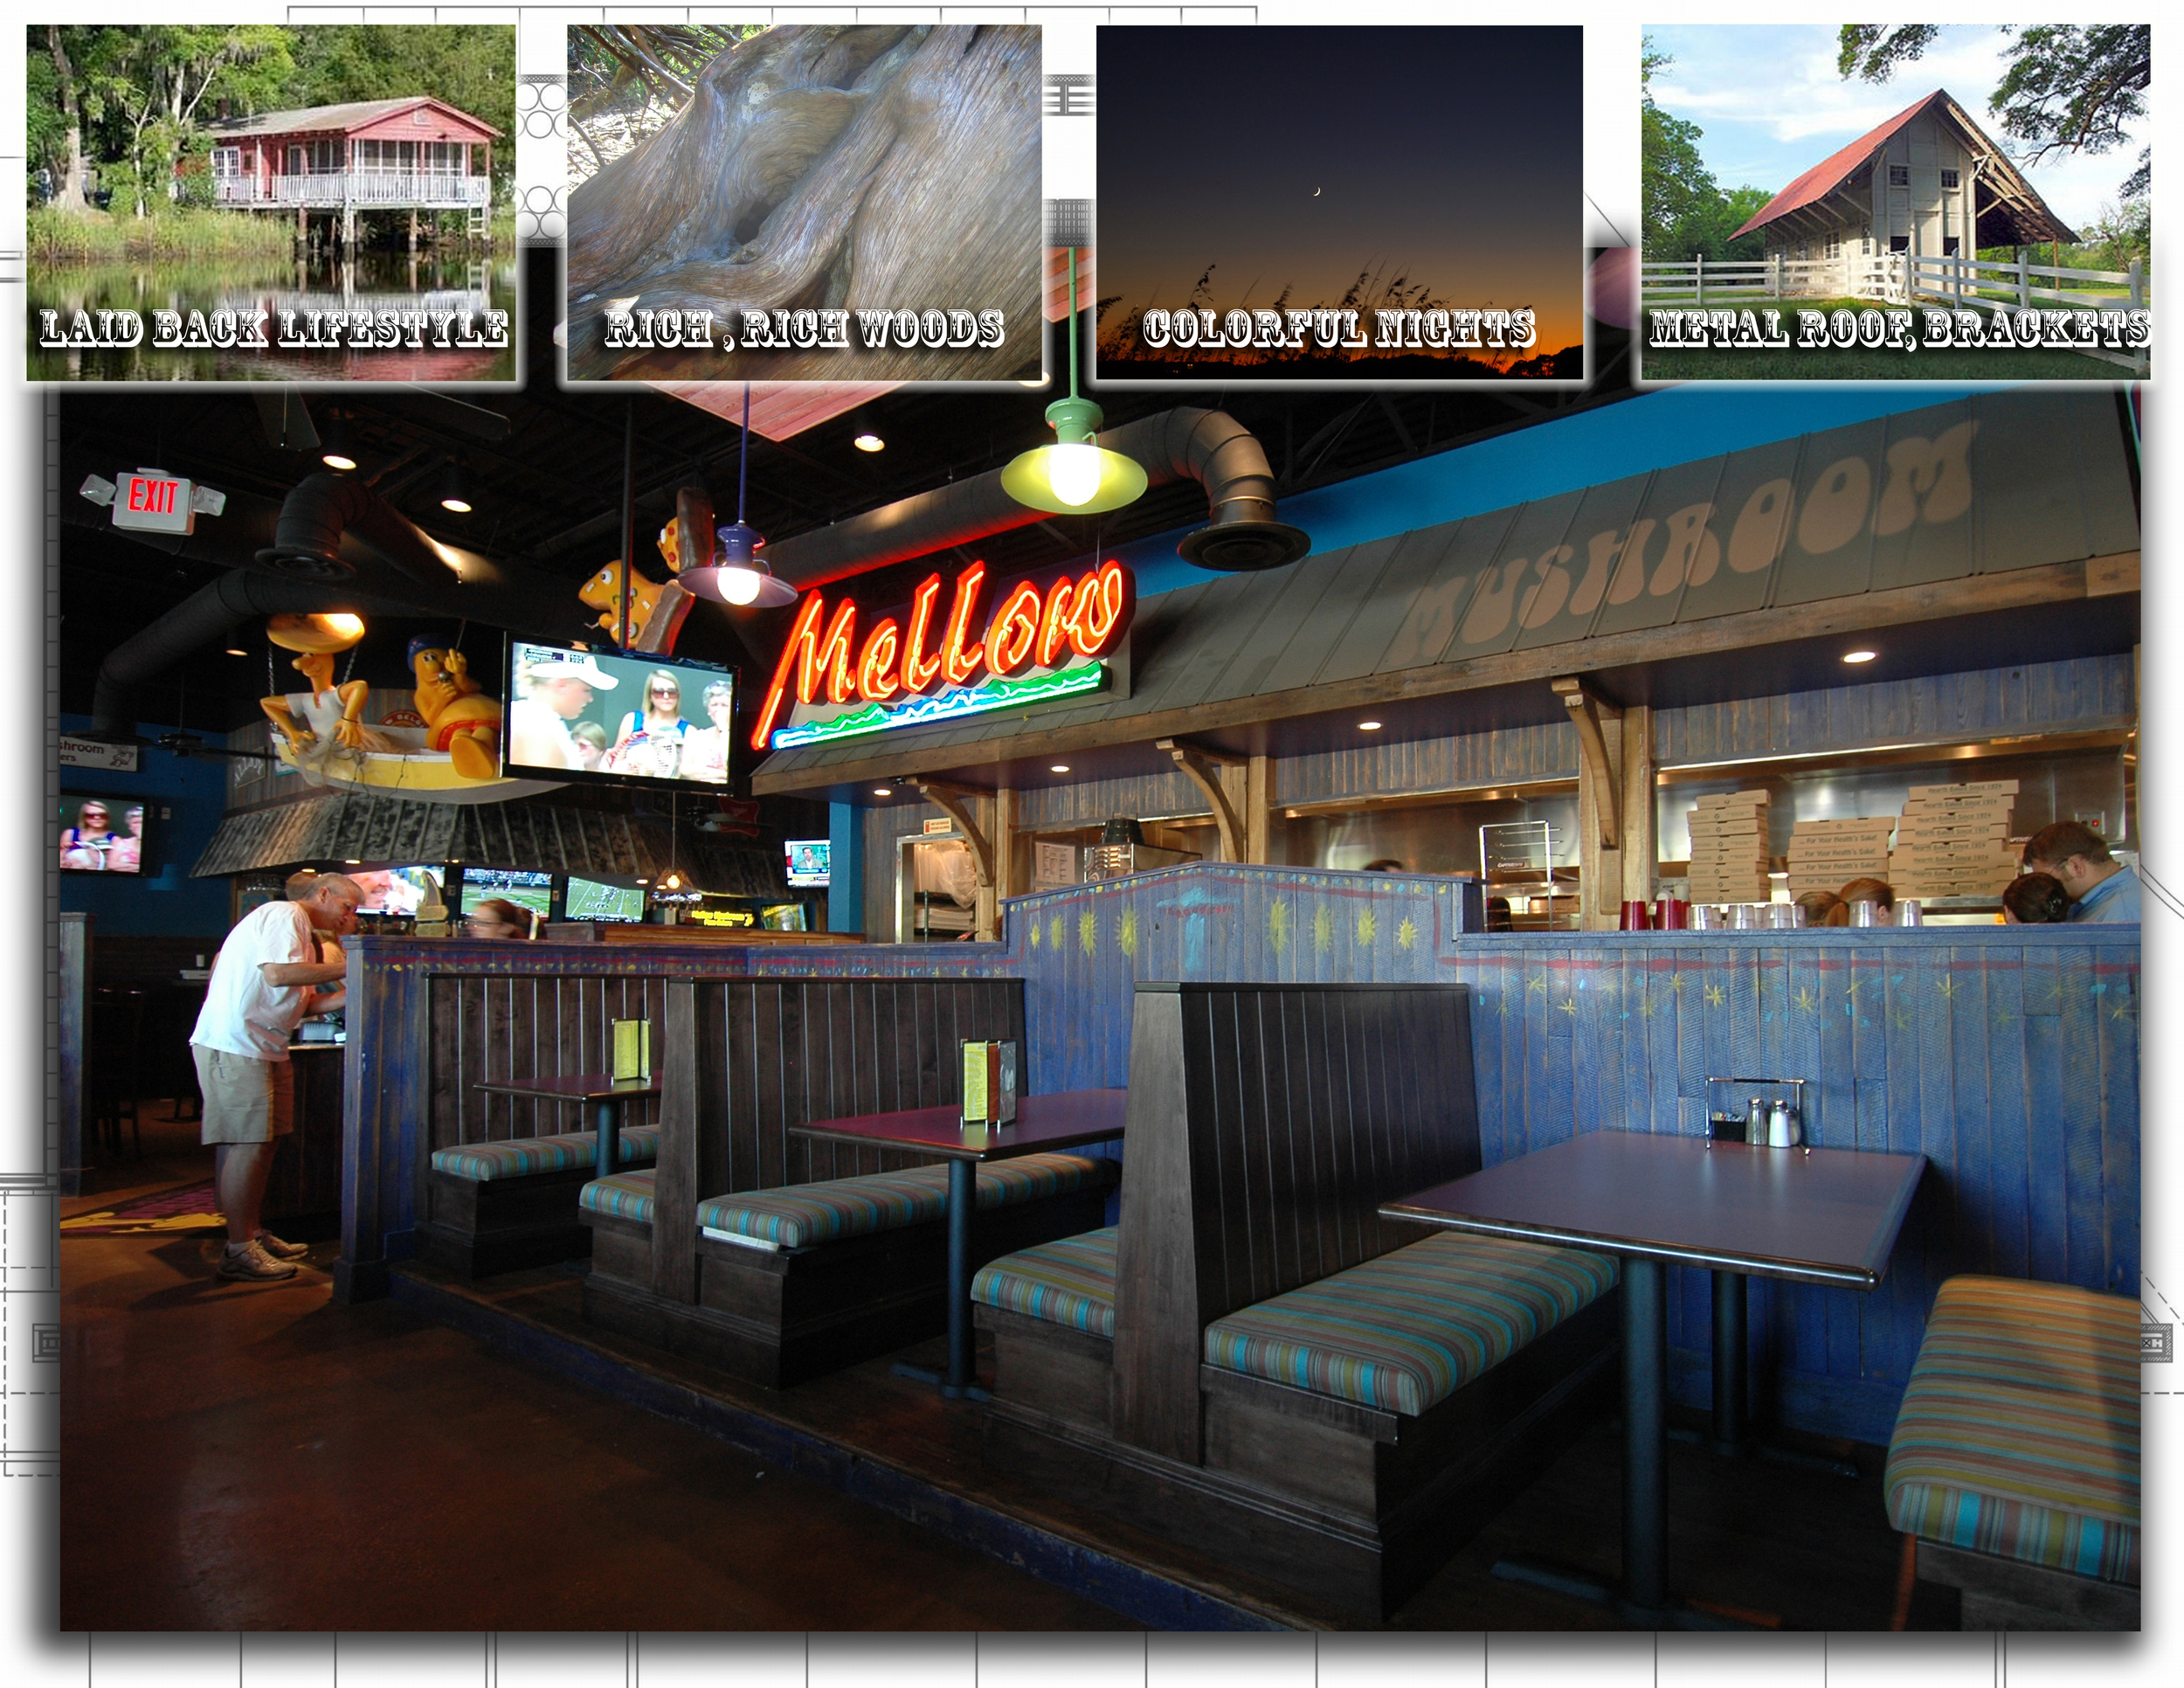 Mellow Mushroom Pizza Bakers   Firm:  Square Feet Island Architects, Inc.  Architect:  Don Baker, AIA